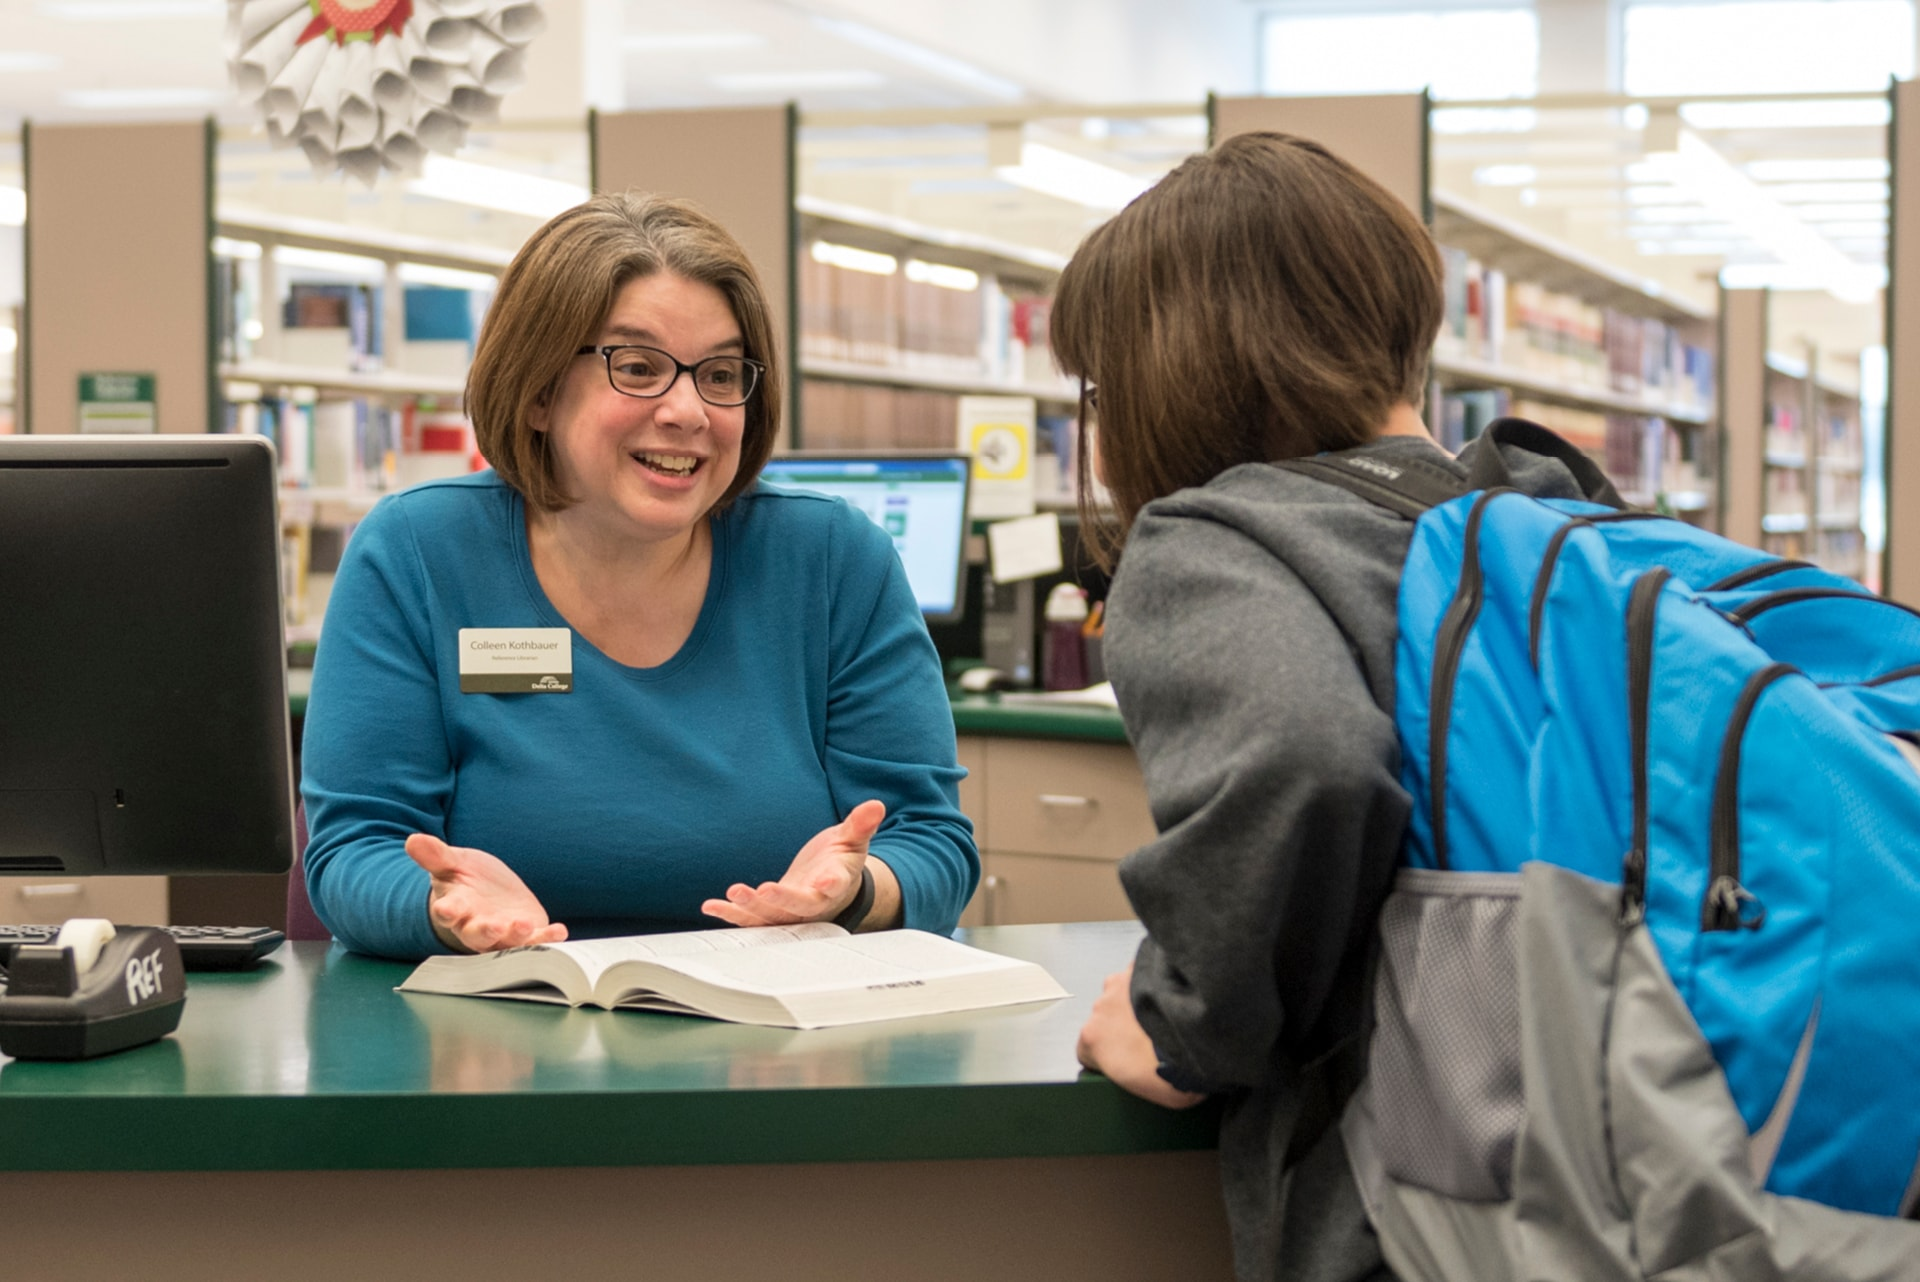 student getting help from a librarian